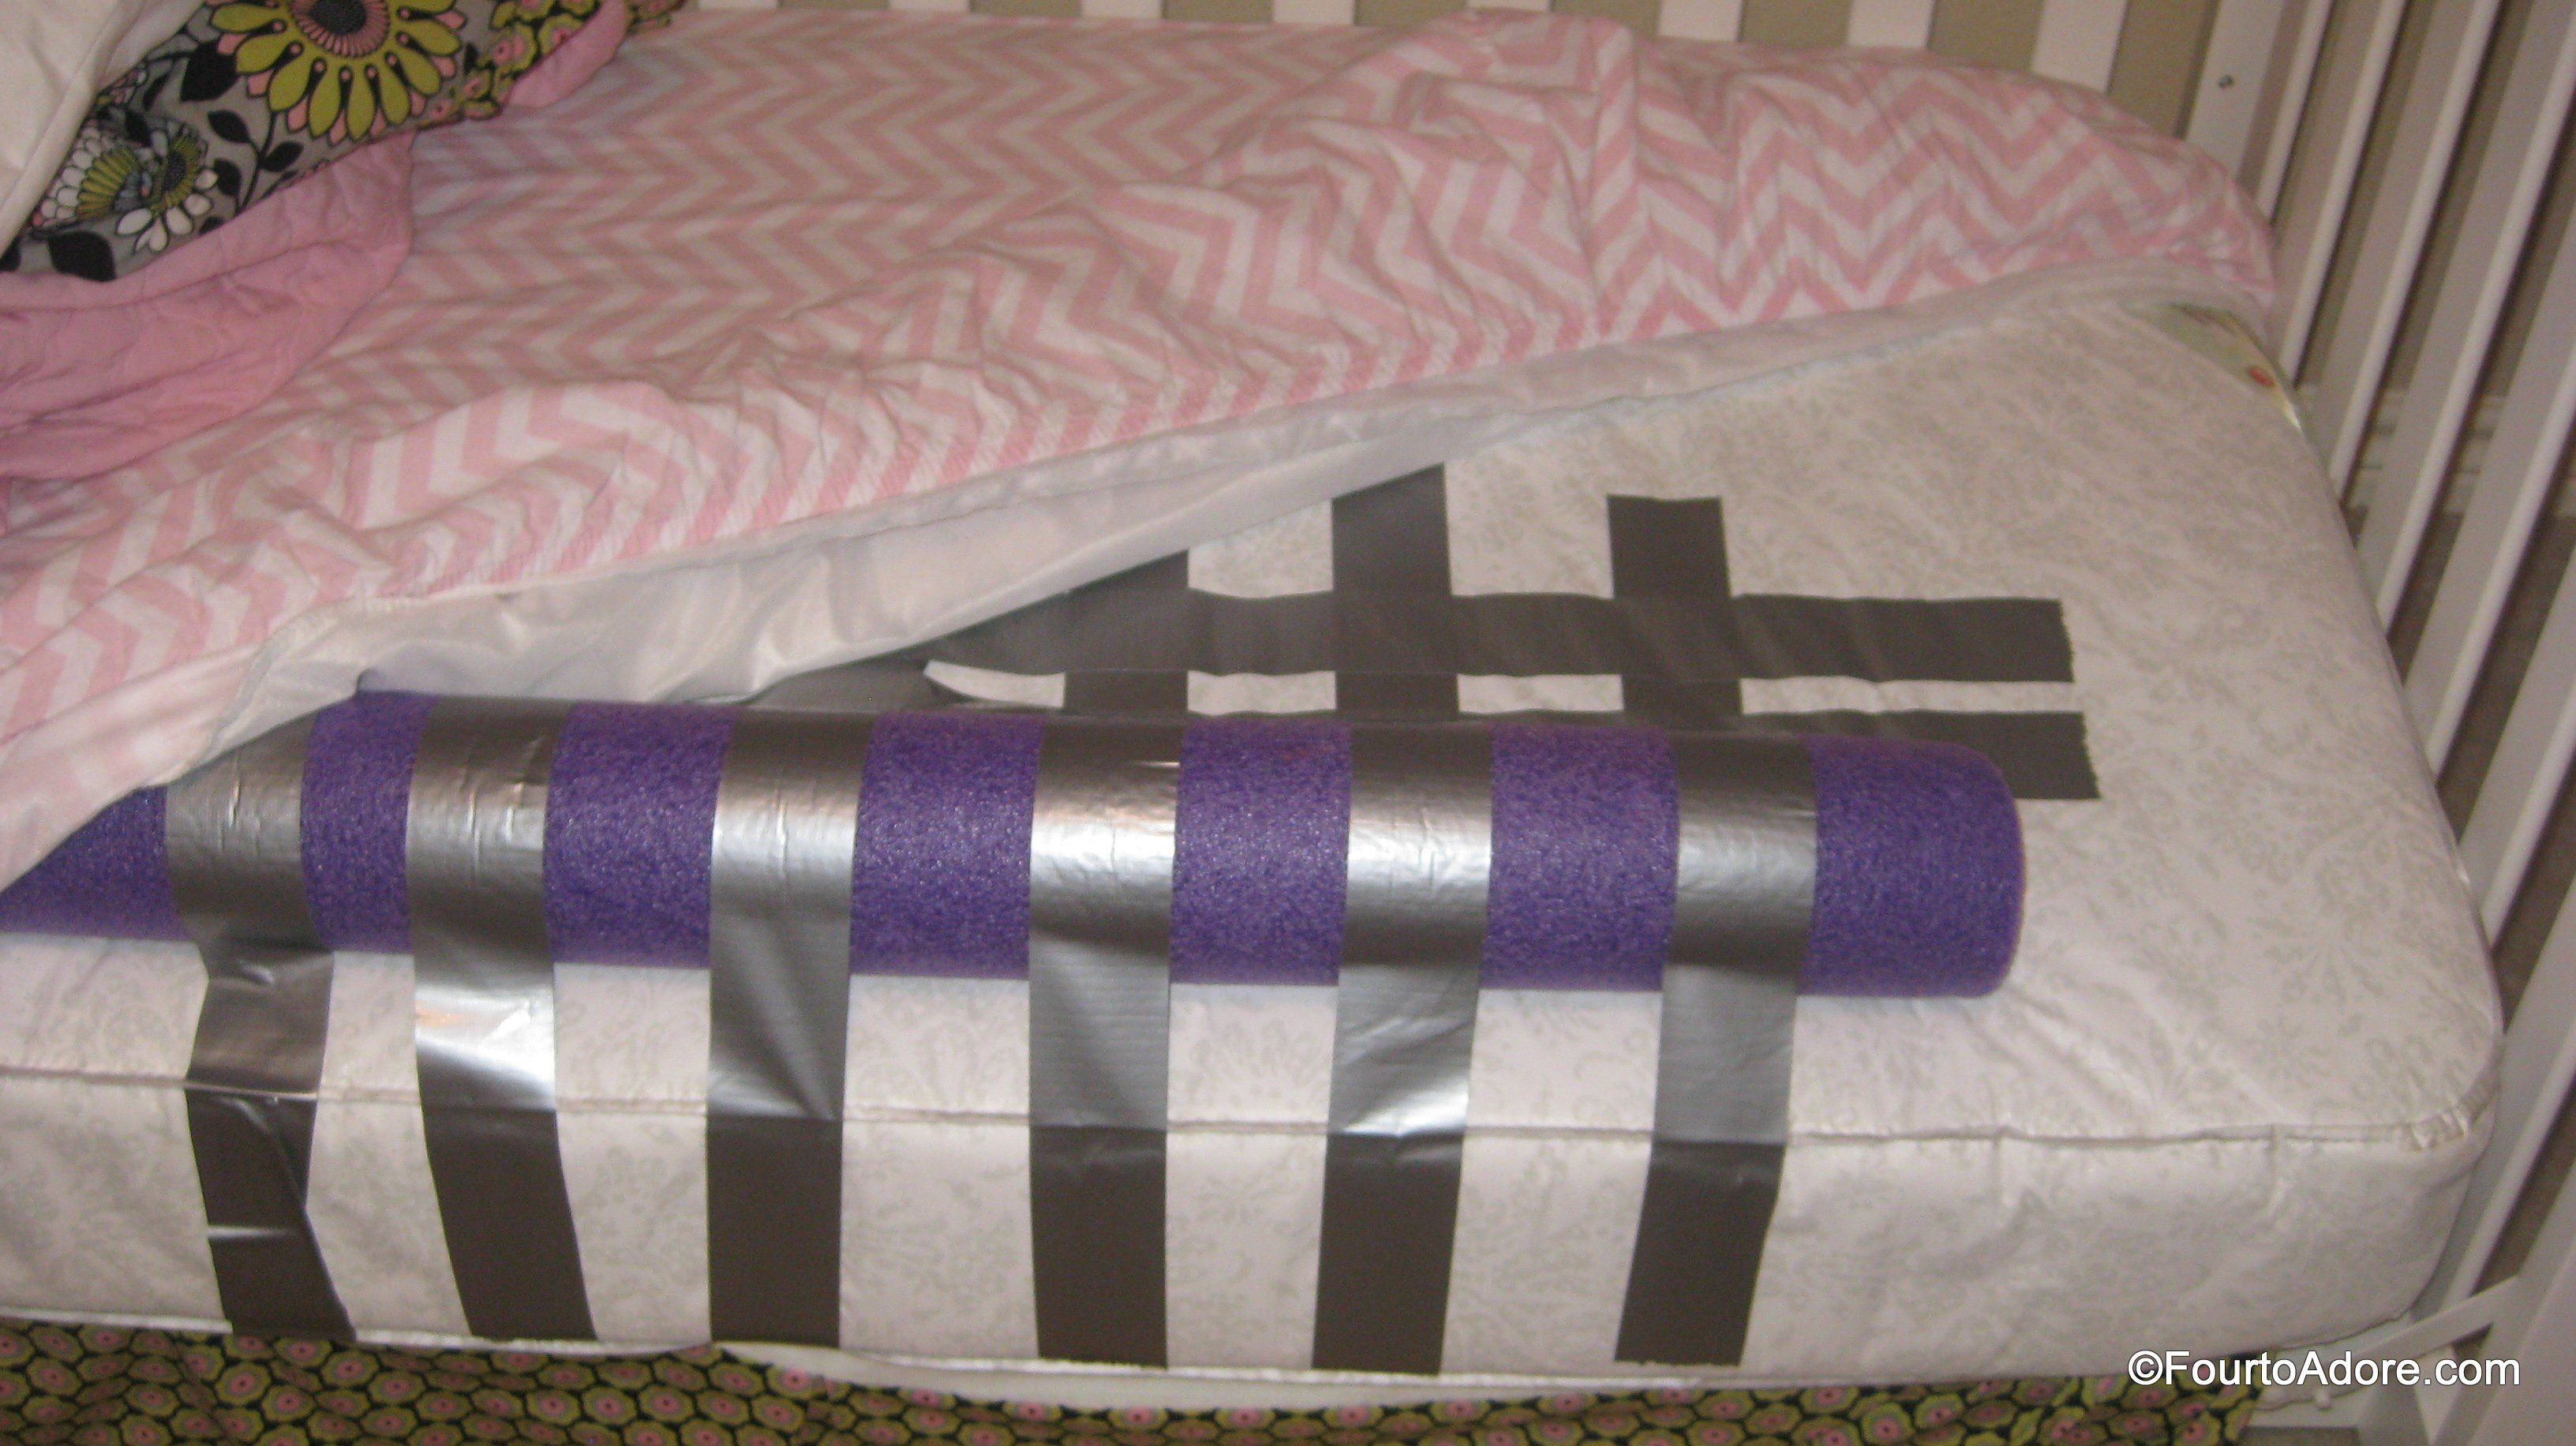 Use Pool Noodles Taped To The Mattress With Duct Tape For